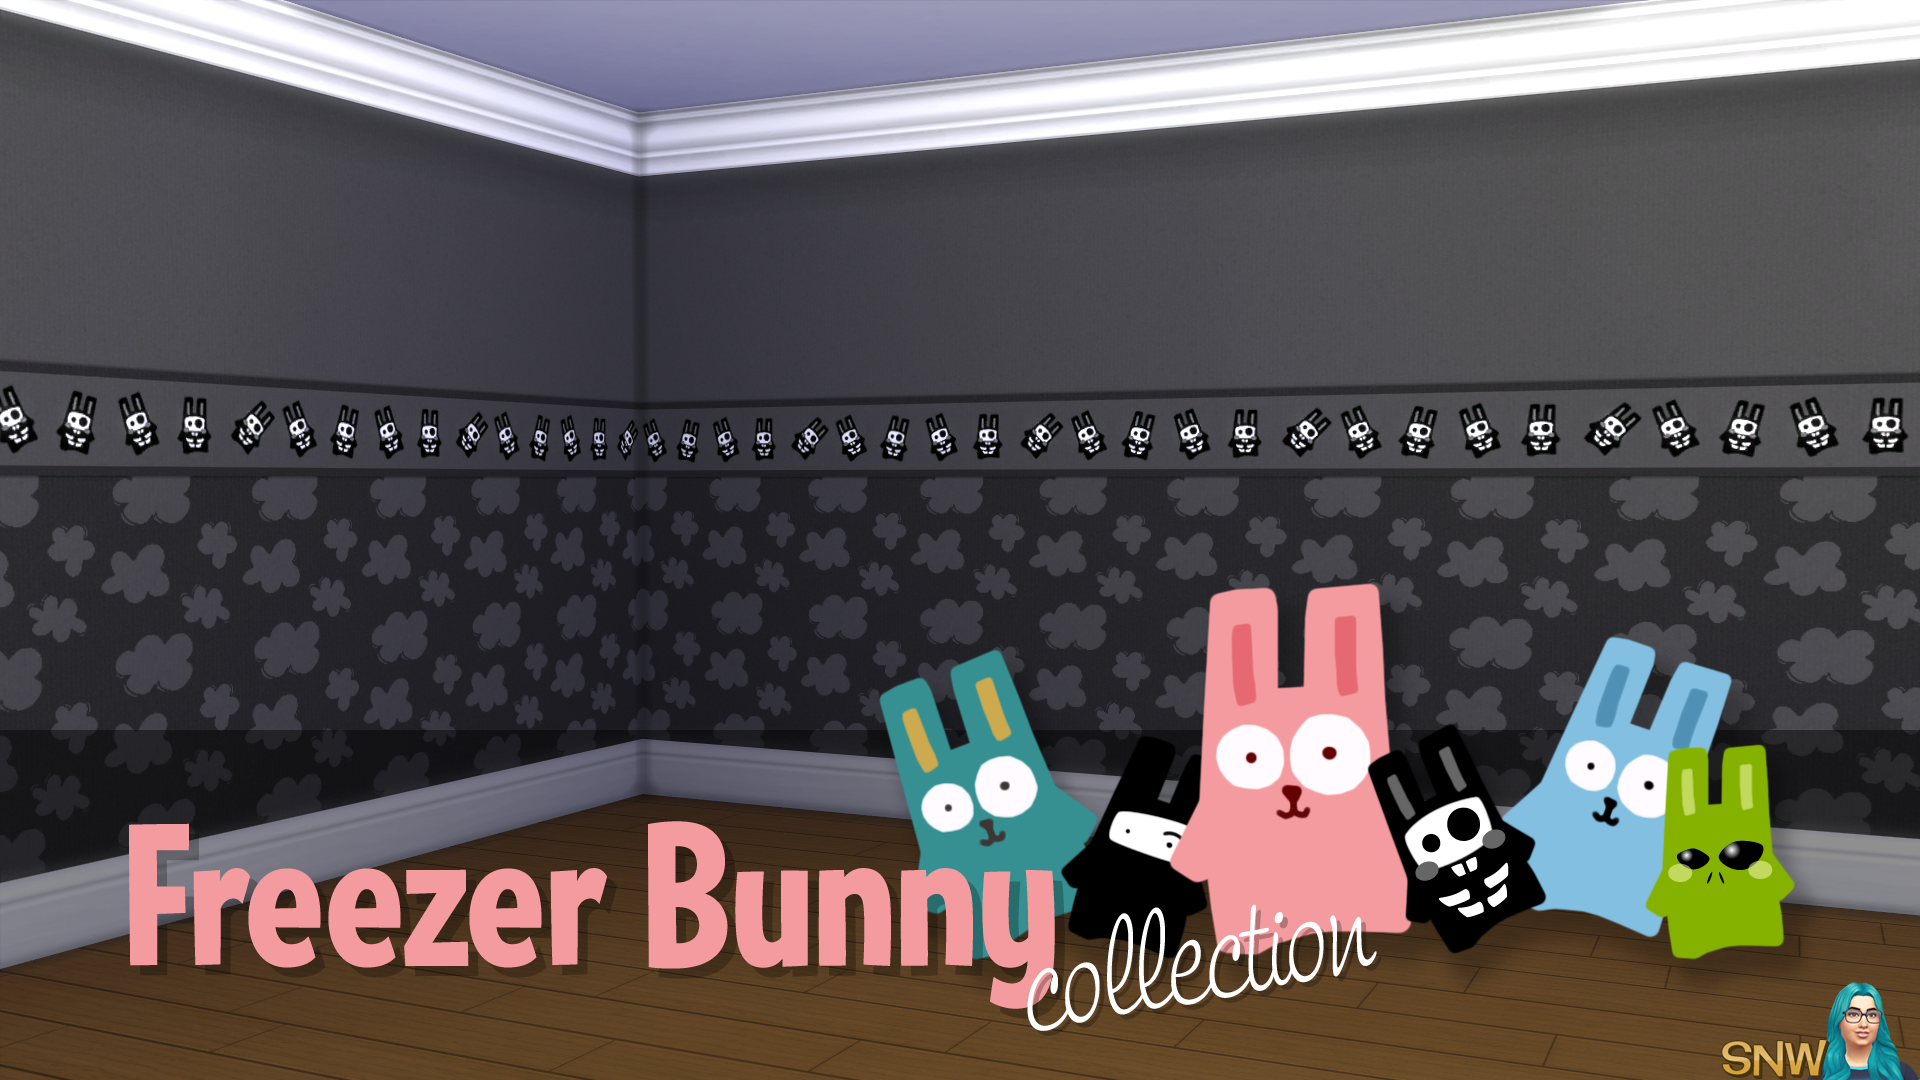 Freezer Bunny Collection Clouds Wallpapers Snw